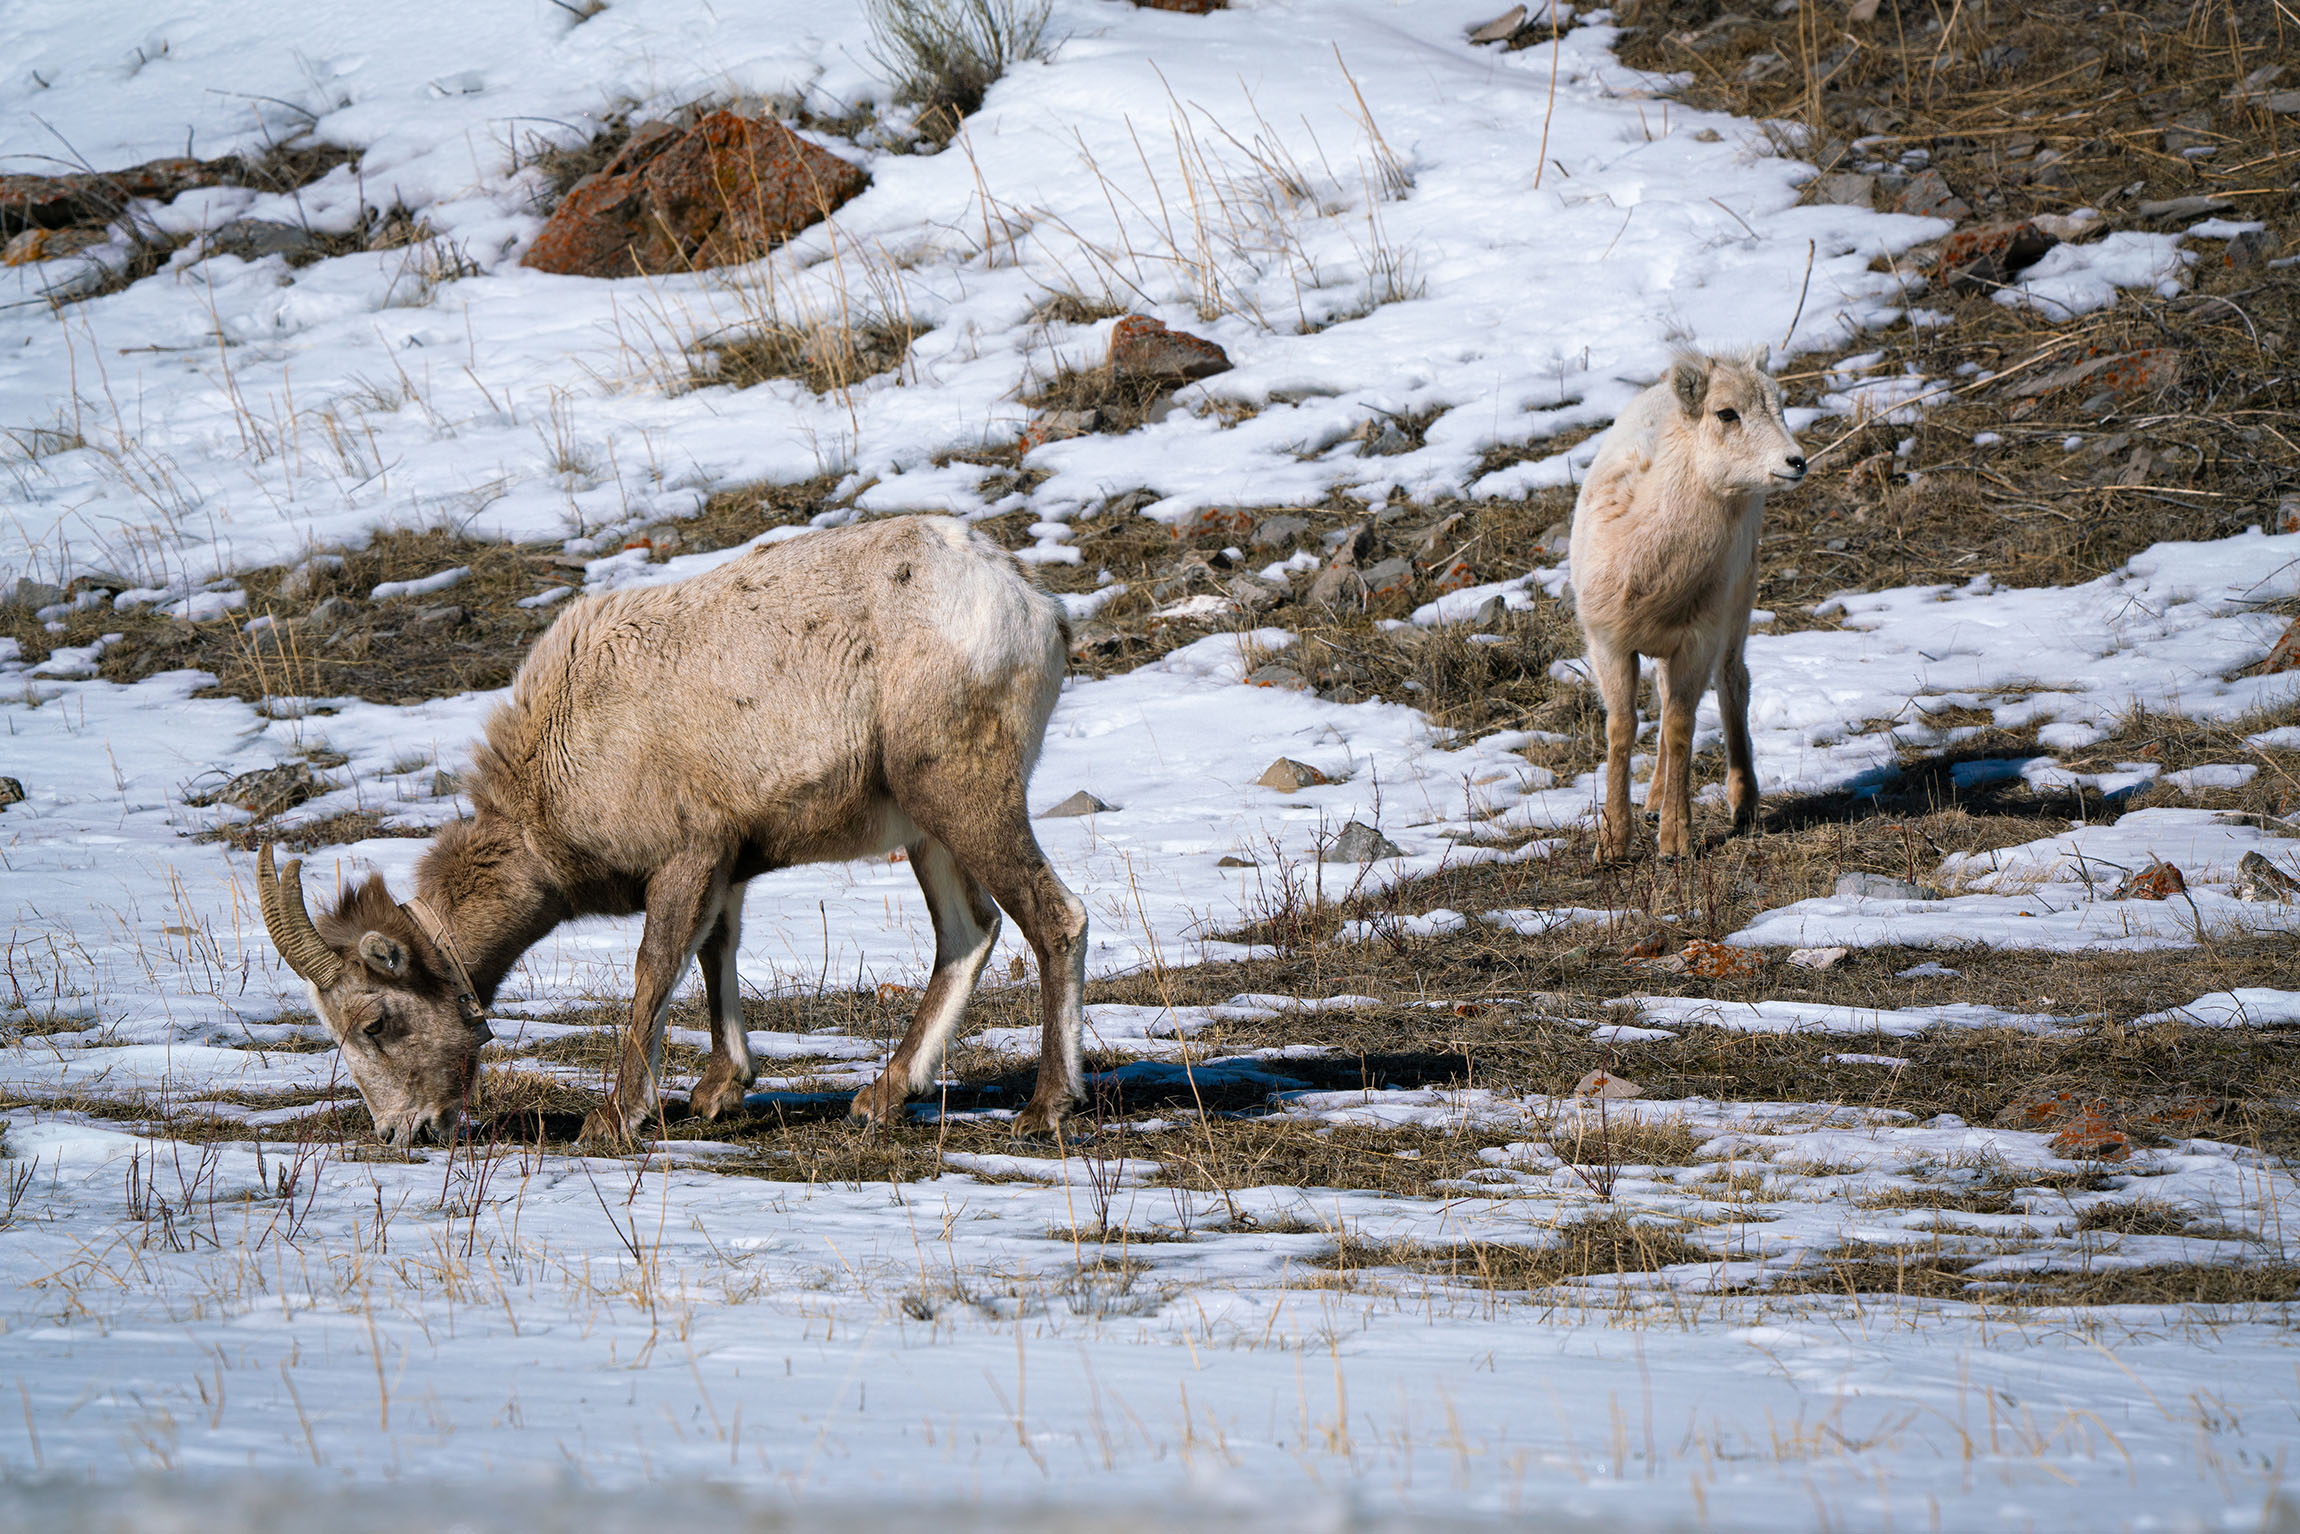 #bighornedsheep, #mother, #yearling, #family, #wildlife, #wildlifephotography, #sony, #sonyar7II, #200-600mmlens, #nature, #naturephotography, #nationalpark, #nps, #grandtetonnationalpark, #jacksonhole, #winter, #elkrefuge